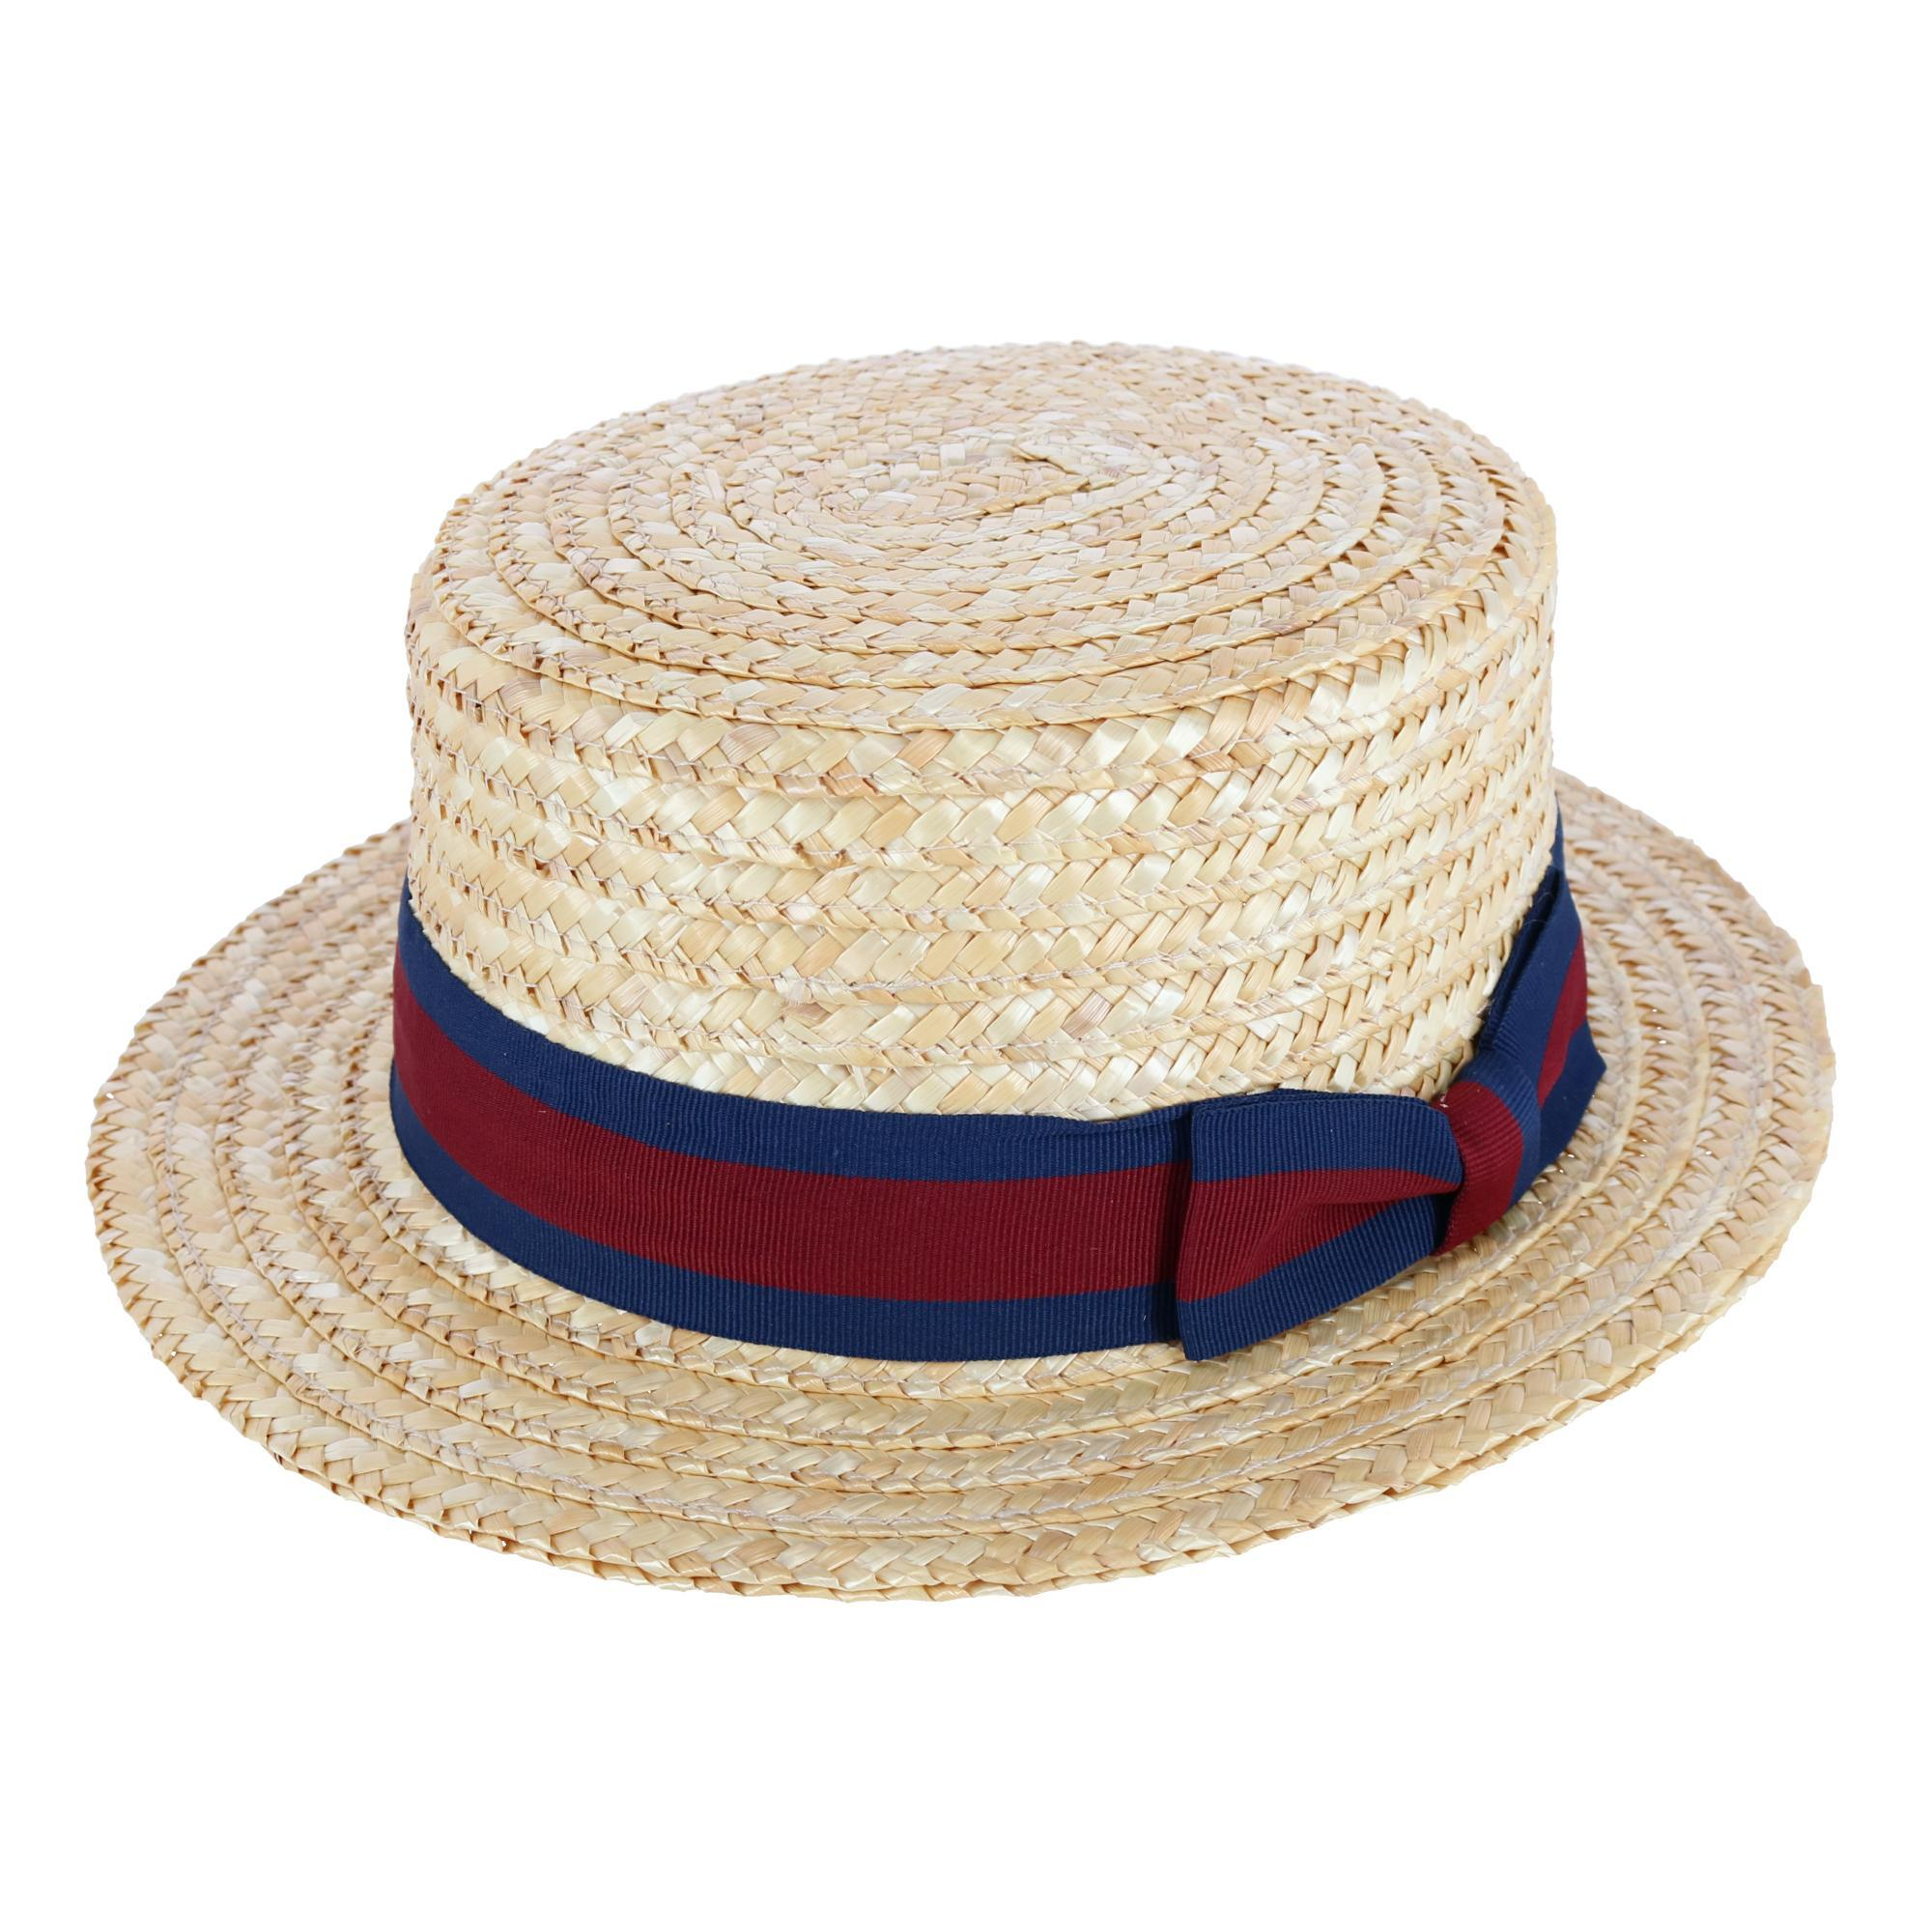 6c5bbe0a7f110 New CTM Straw 2.5 Inch Brim Boater Hat with Navy Band | eBay